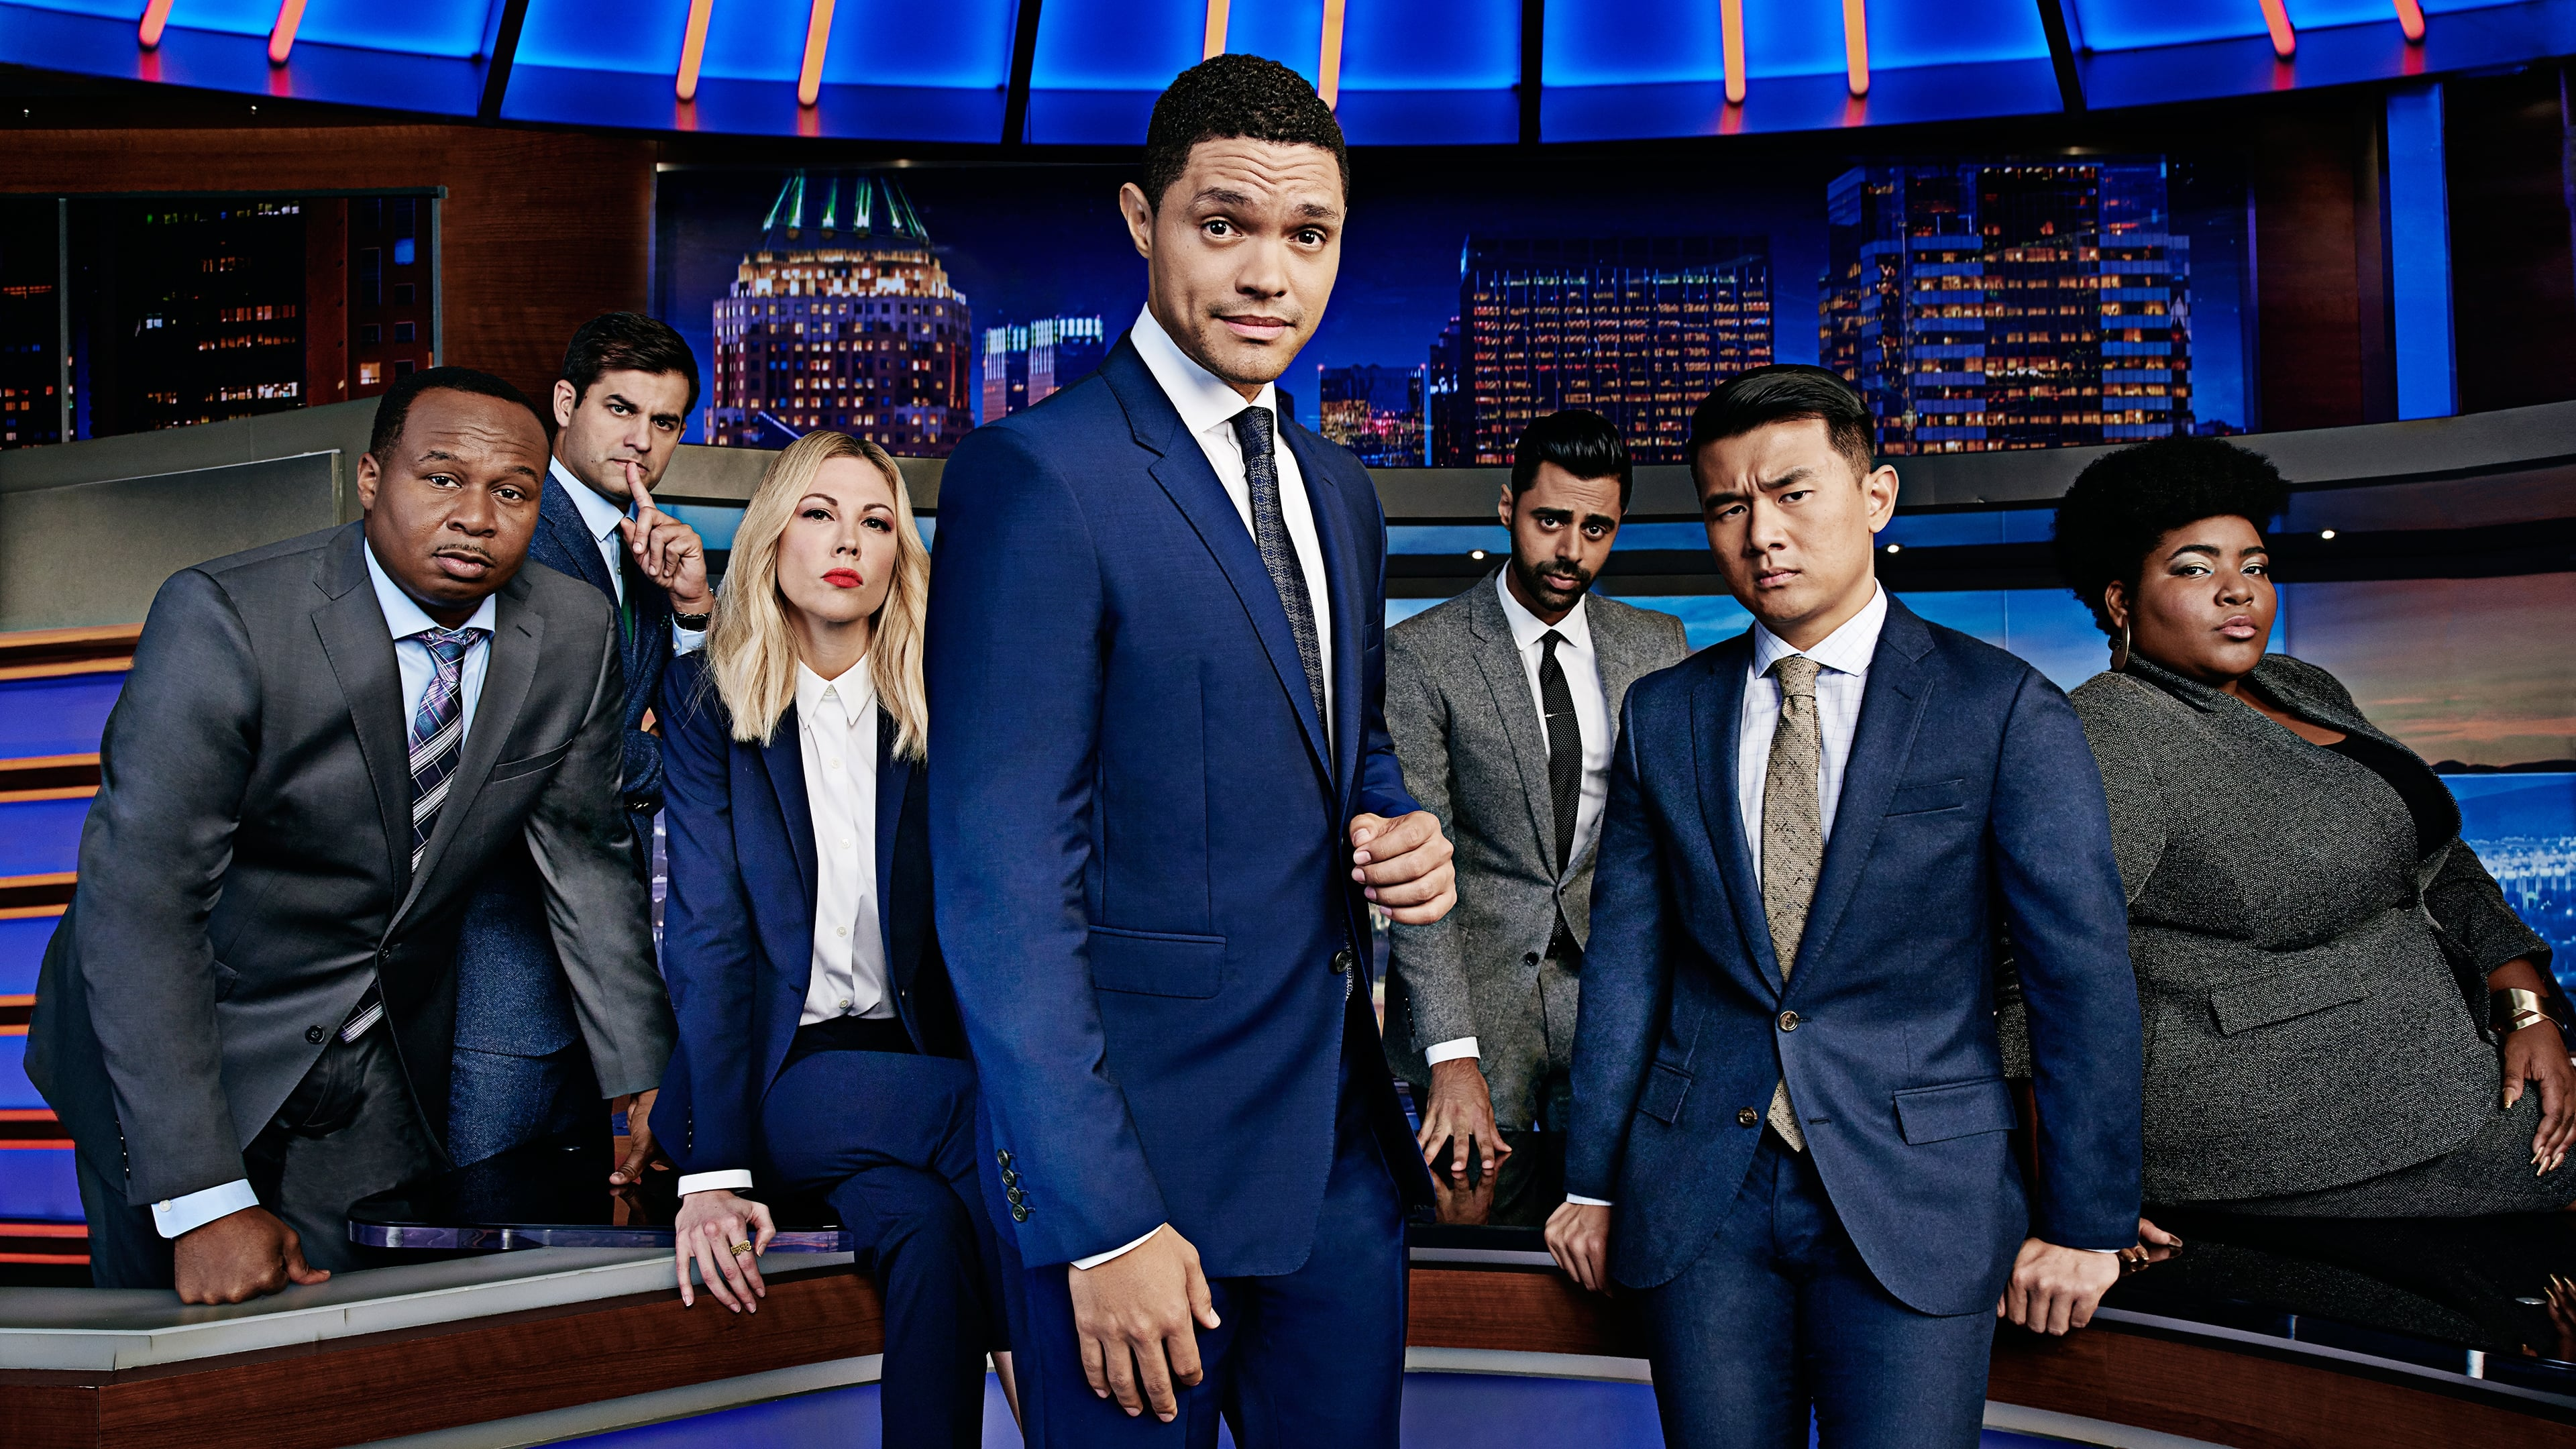 The Daily Show with Trevor Noah - Season 9